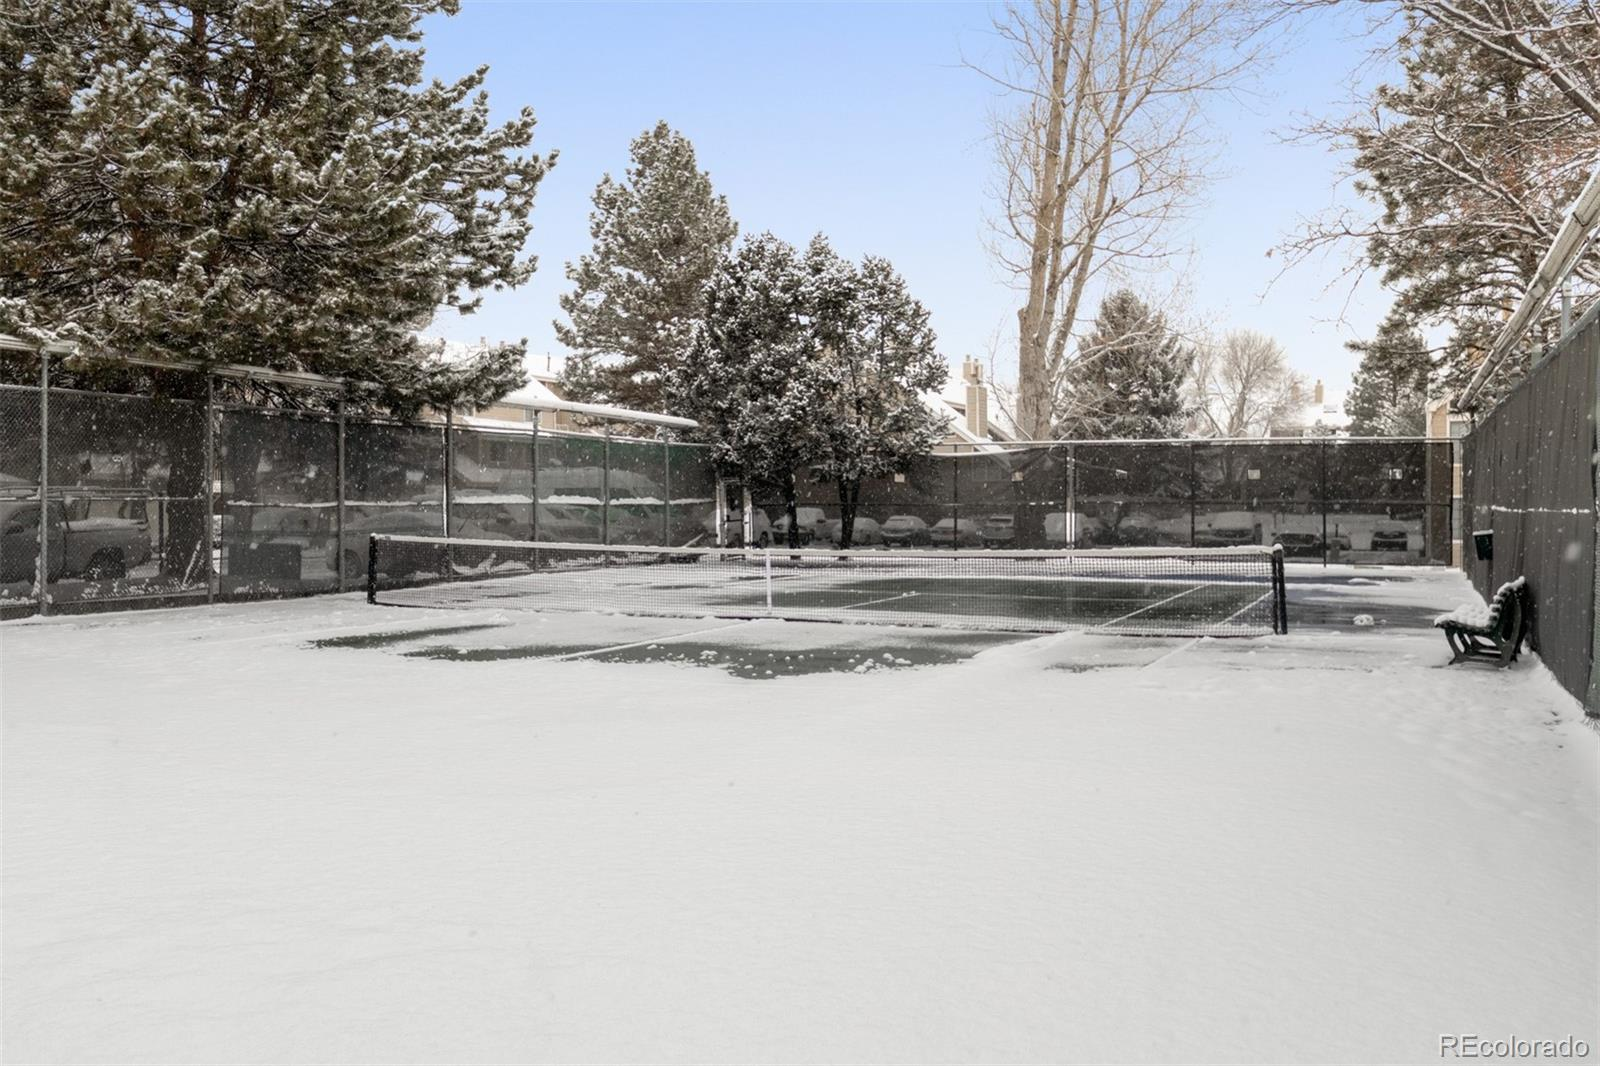 MLS# 2514185 - 6036 Gunbarrel Avenue #D, Boulder, CO 80301